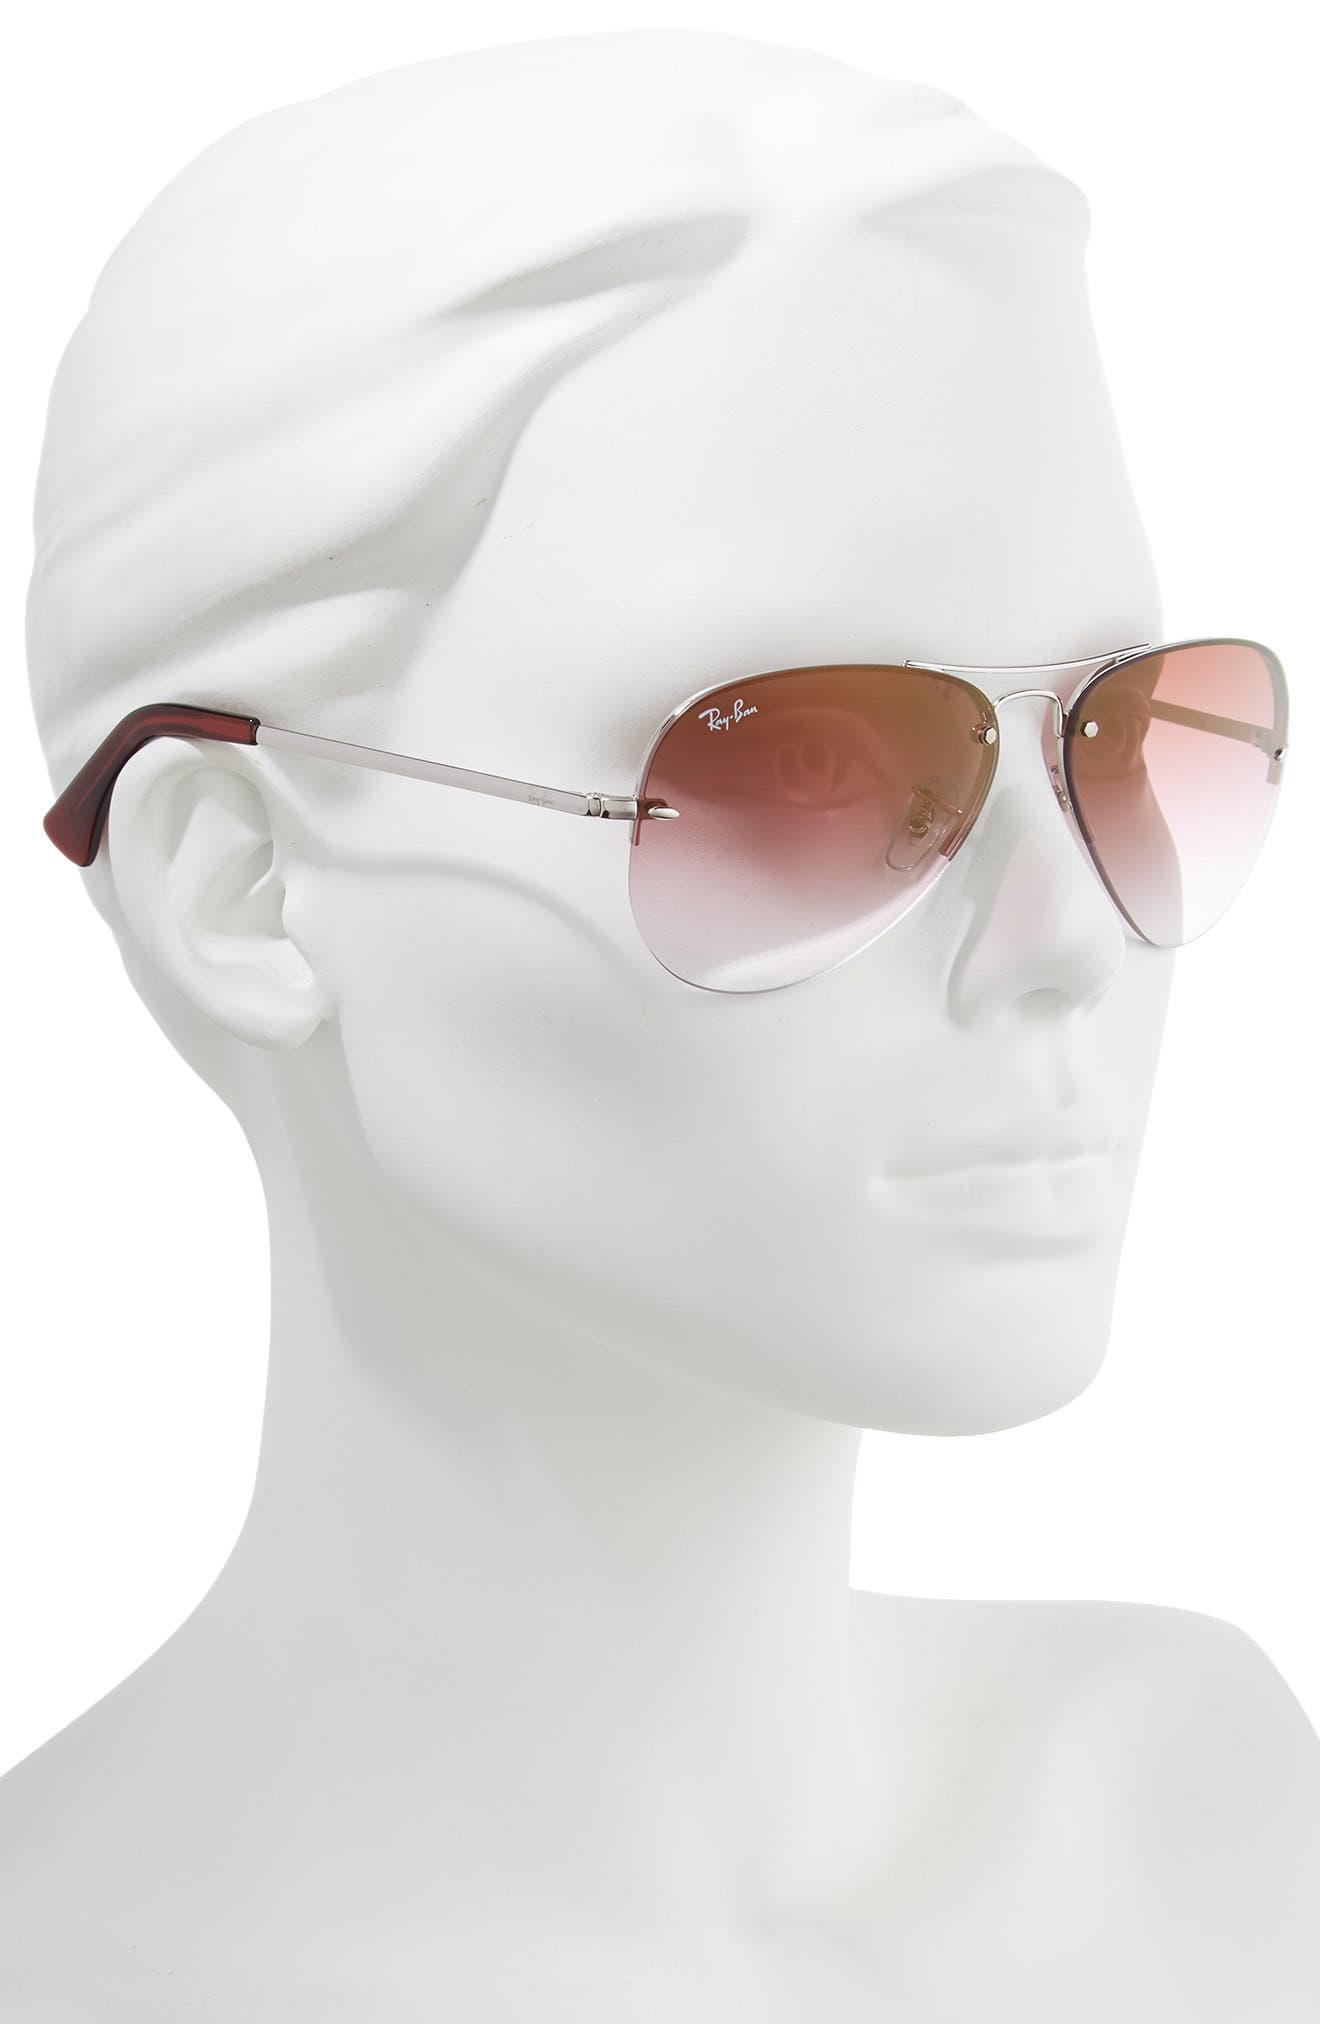 RAY-BAN, Highstreet 59mm Semi Rimless Aviator Sunglasses, Alternate thumbnail 2, color, SILVER/ BORDEAUX GRADIENT